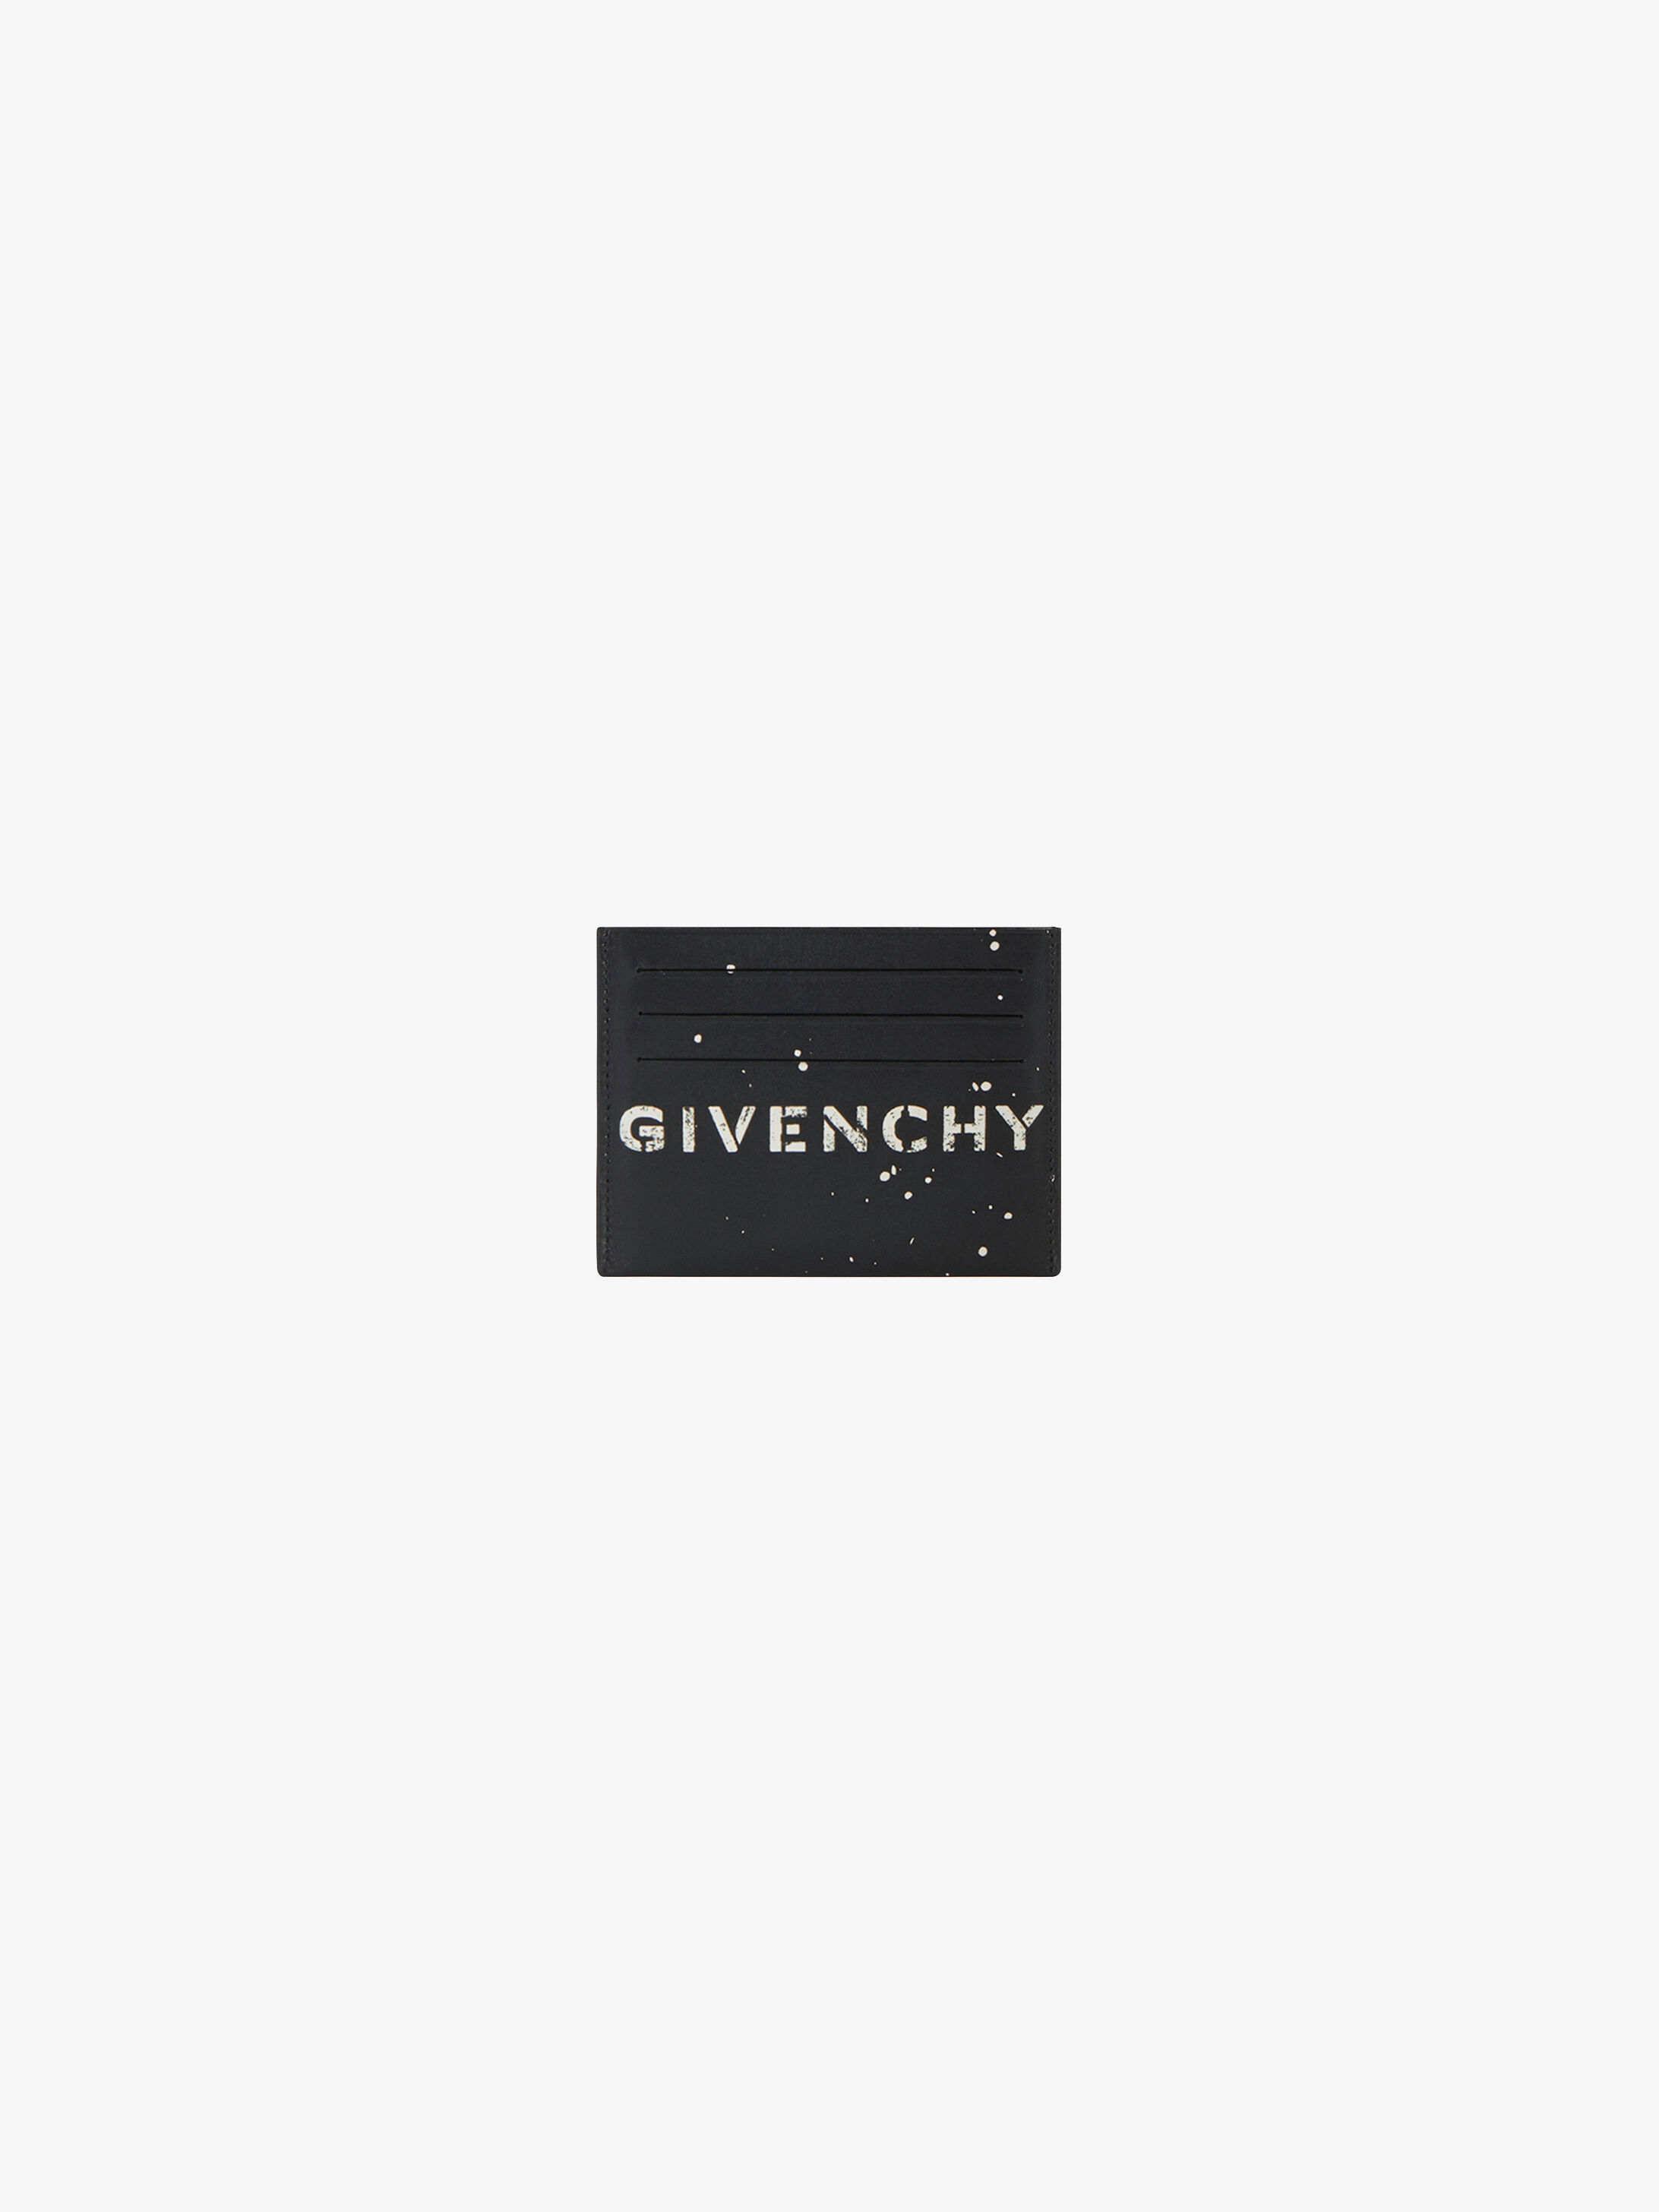 Carte Black Galerie Lafayette.Men S Key And Card Holders Collection By Givenchy Givenchy Paris